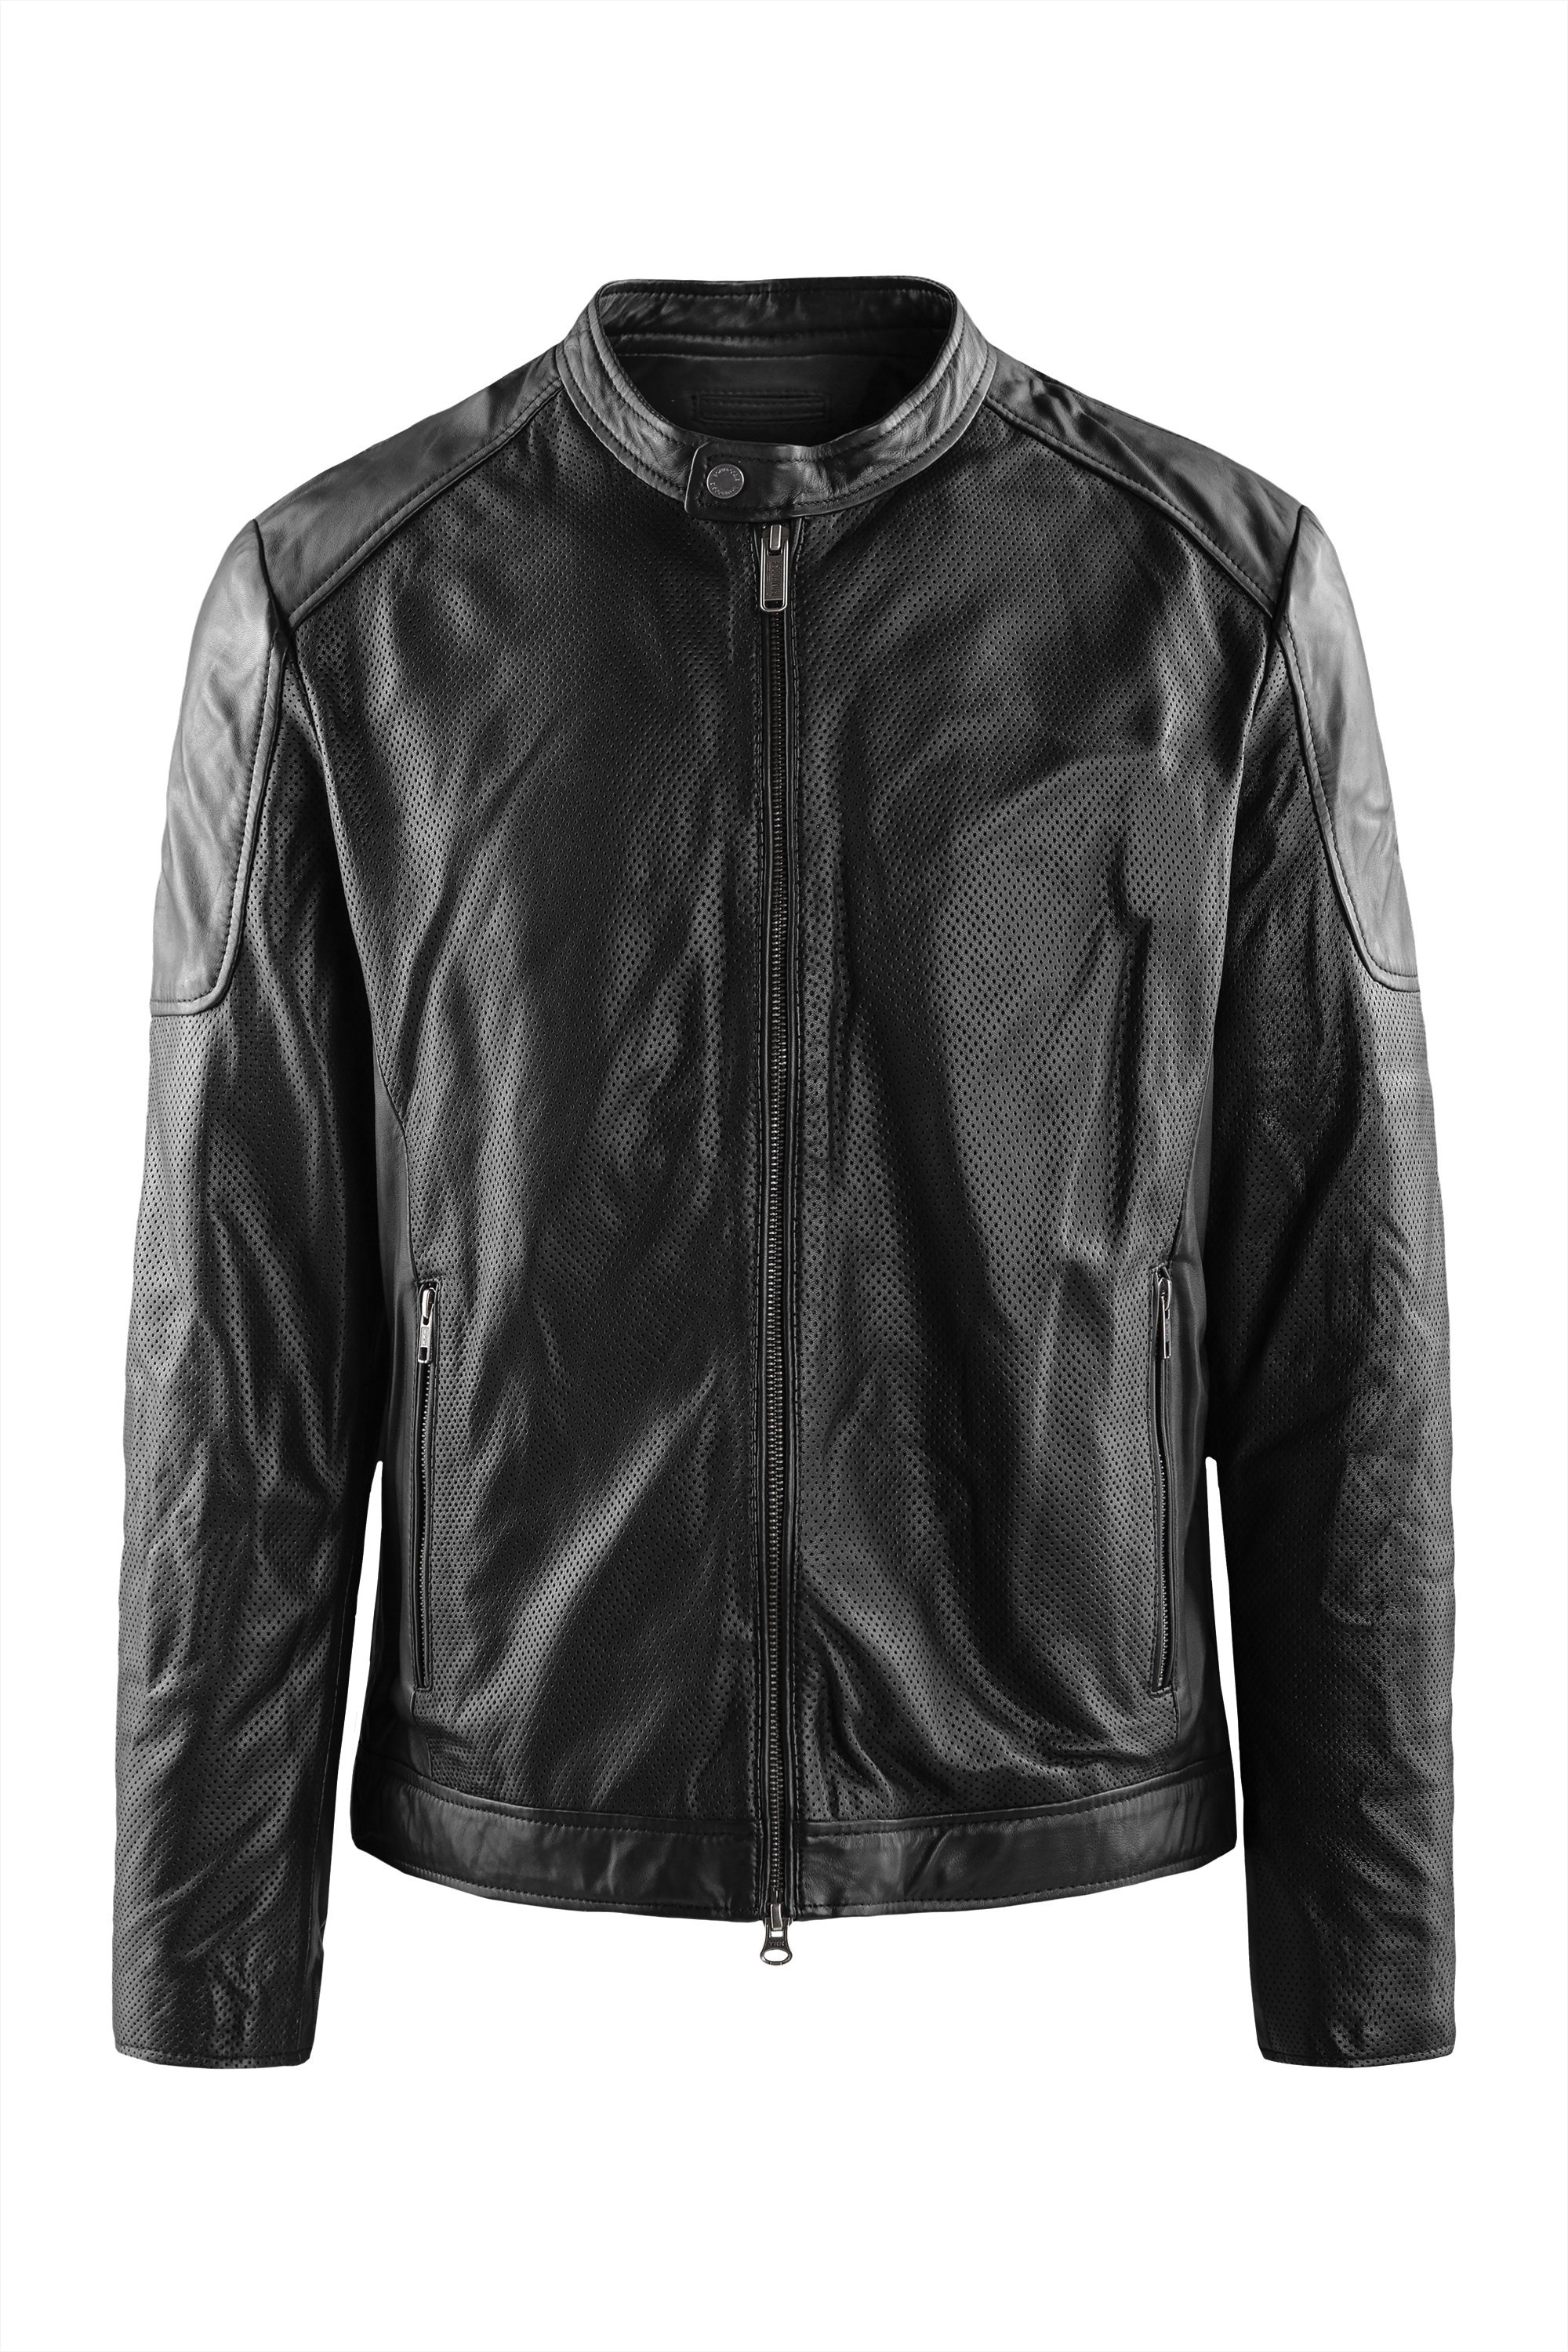 Clan pierced leather jacket